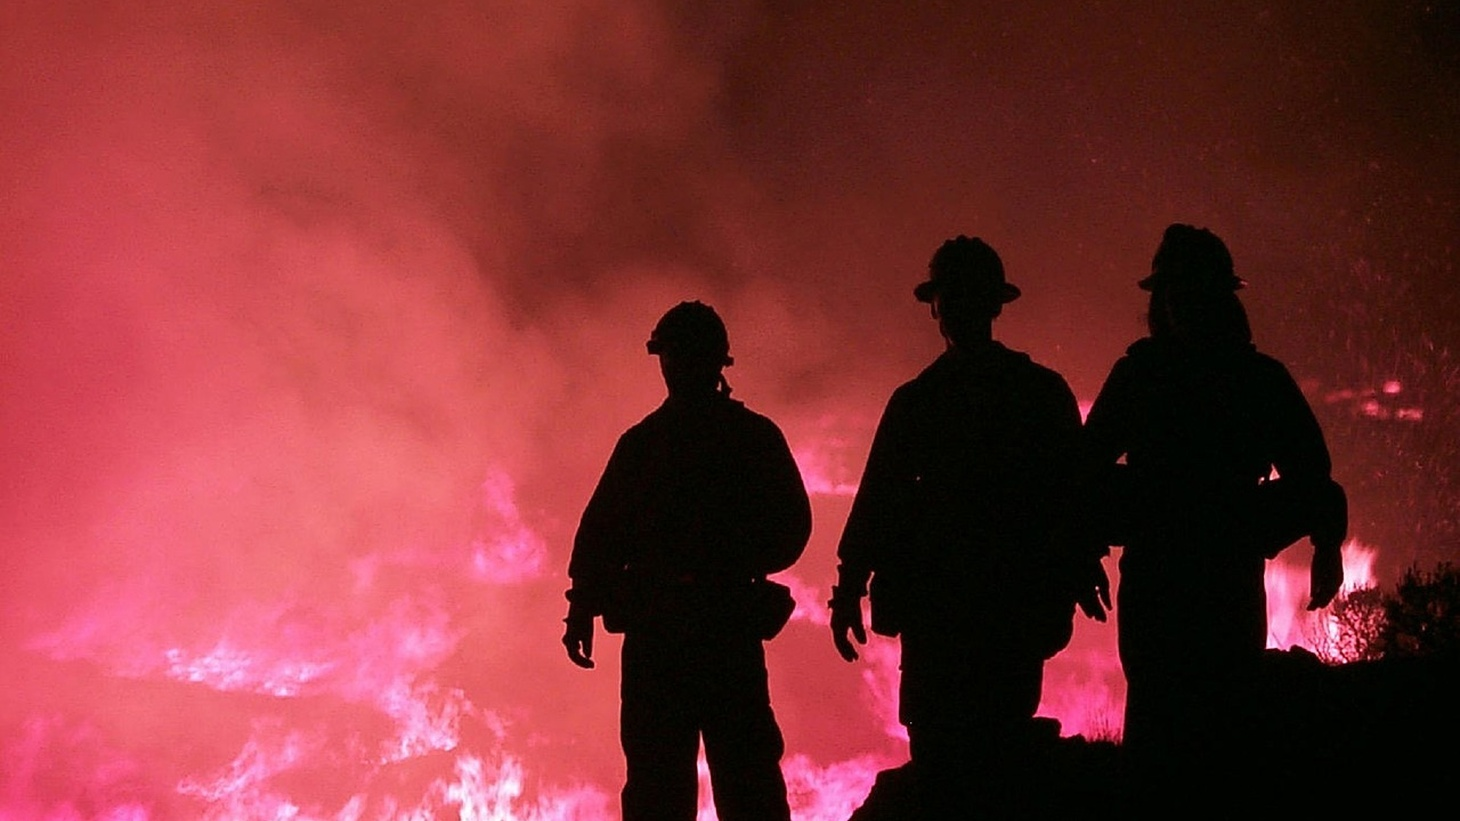 Firefigthers facing a wildfire.